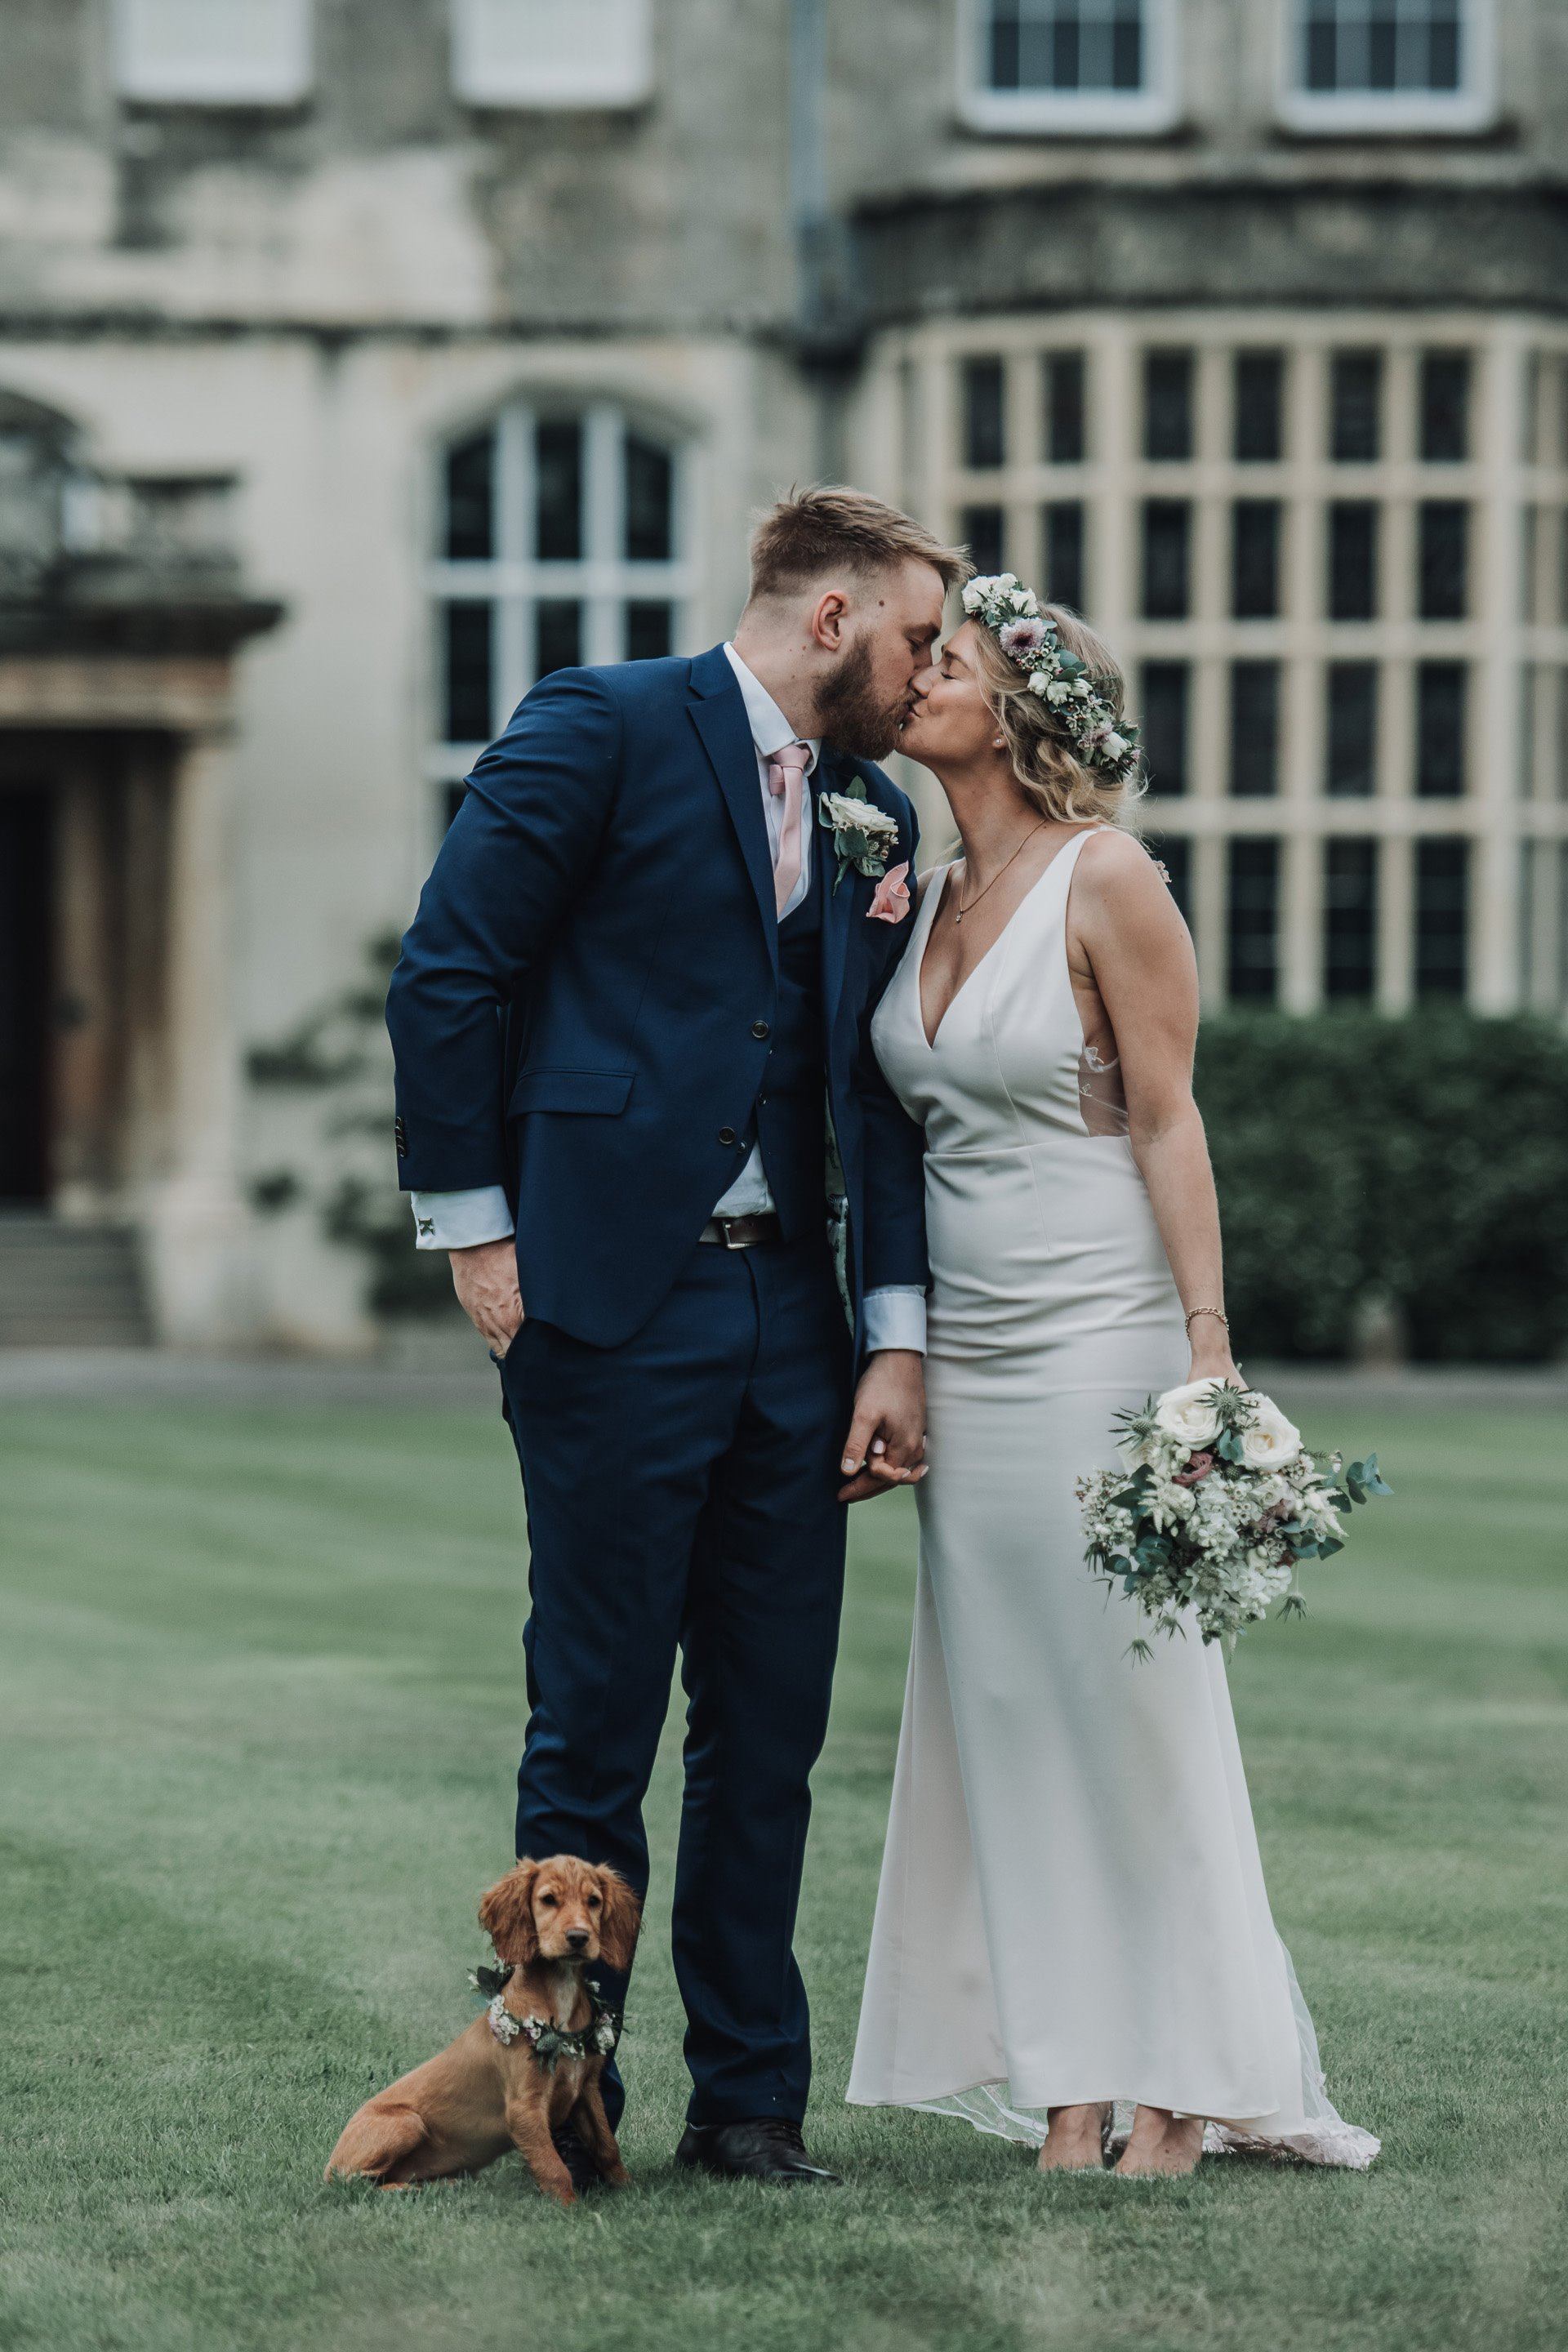 Dog friendly micro wedding at Elmore court. Bride and Groom kiss on the lawn in front of stately home with their puppy bridesmaid dressed in flowers beside them